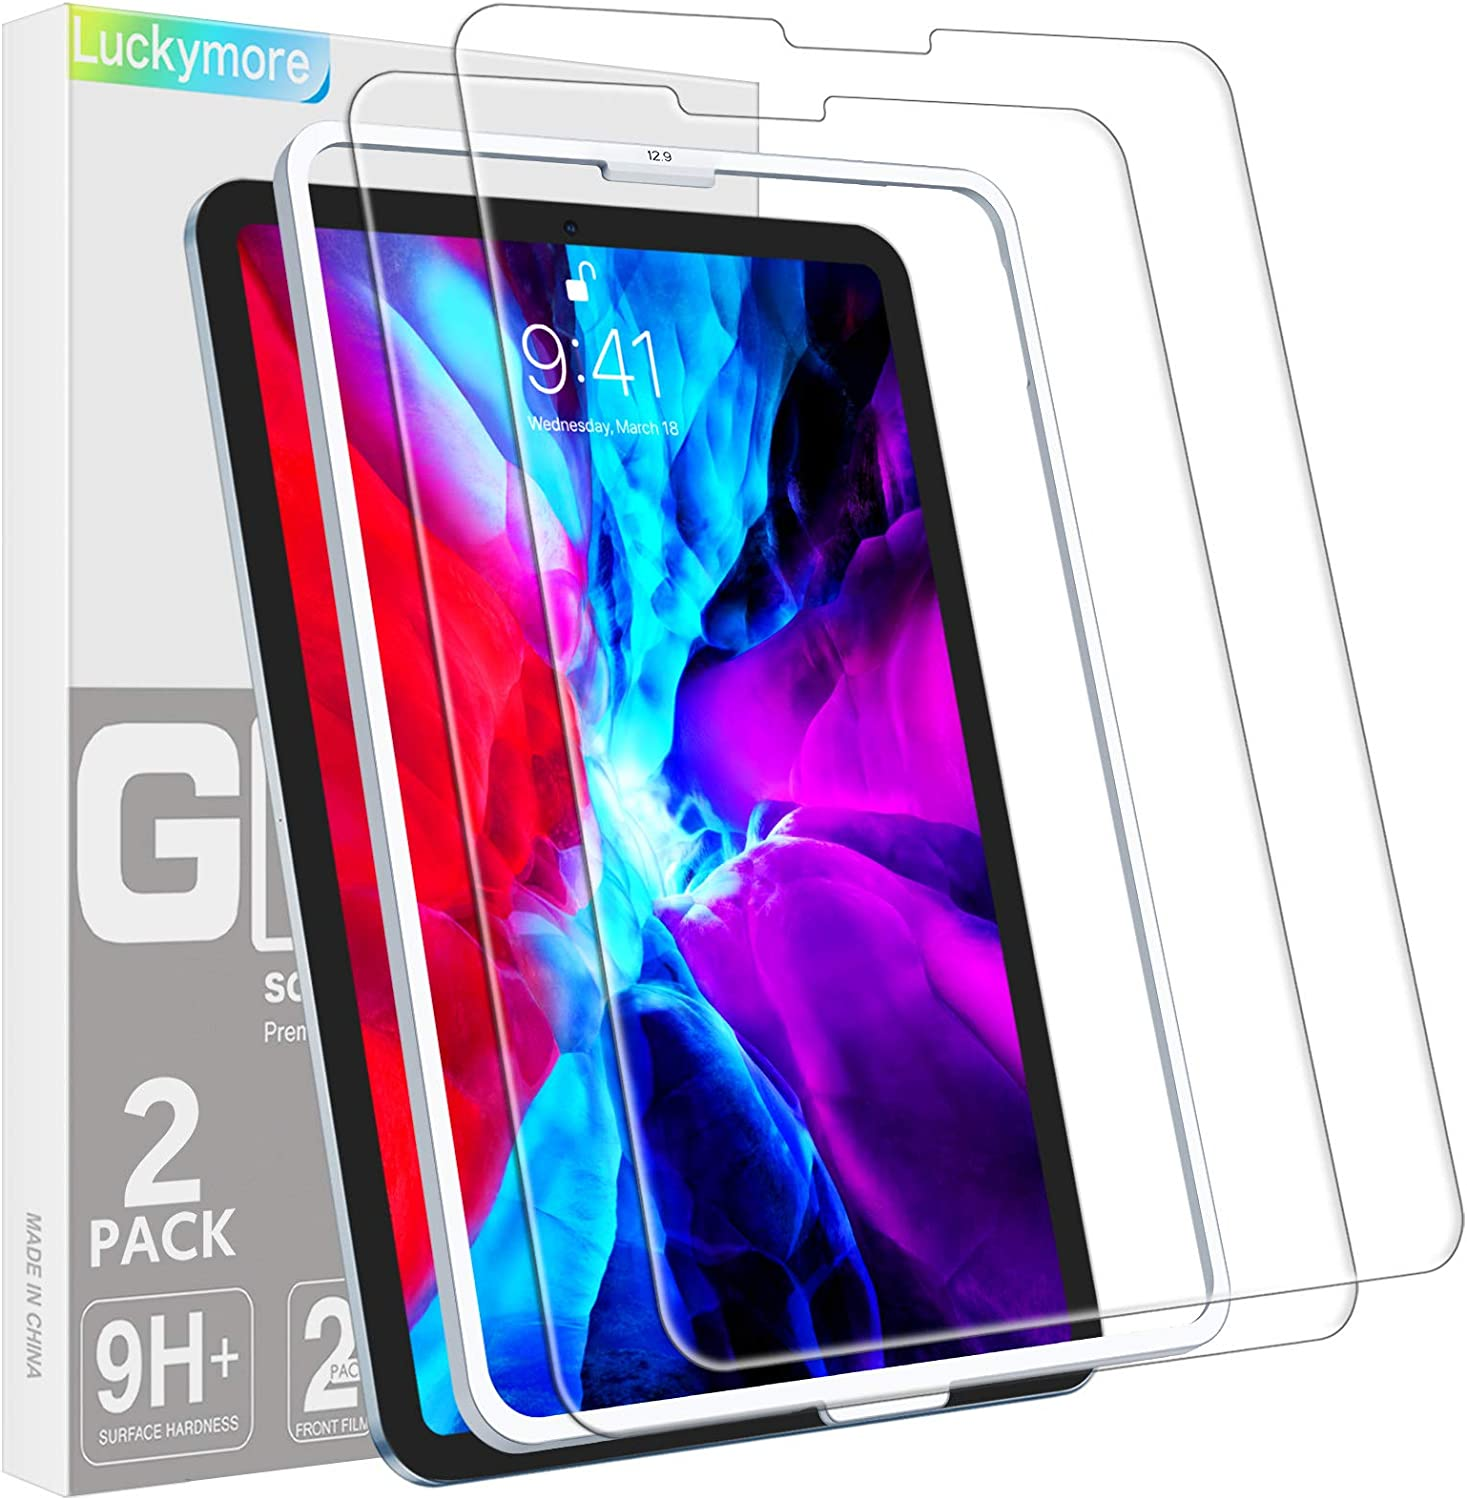 Luckymore 2 Pack Screen Protector for Ranking Year-end gift TOP20 2021 a inch pro 12.9 iPad